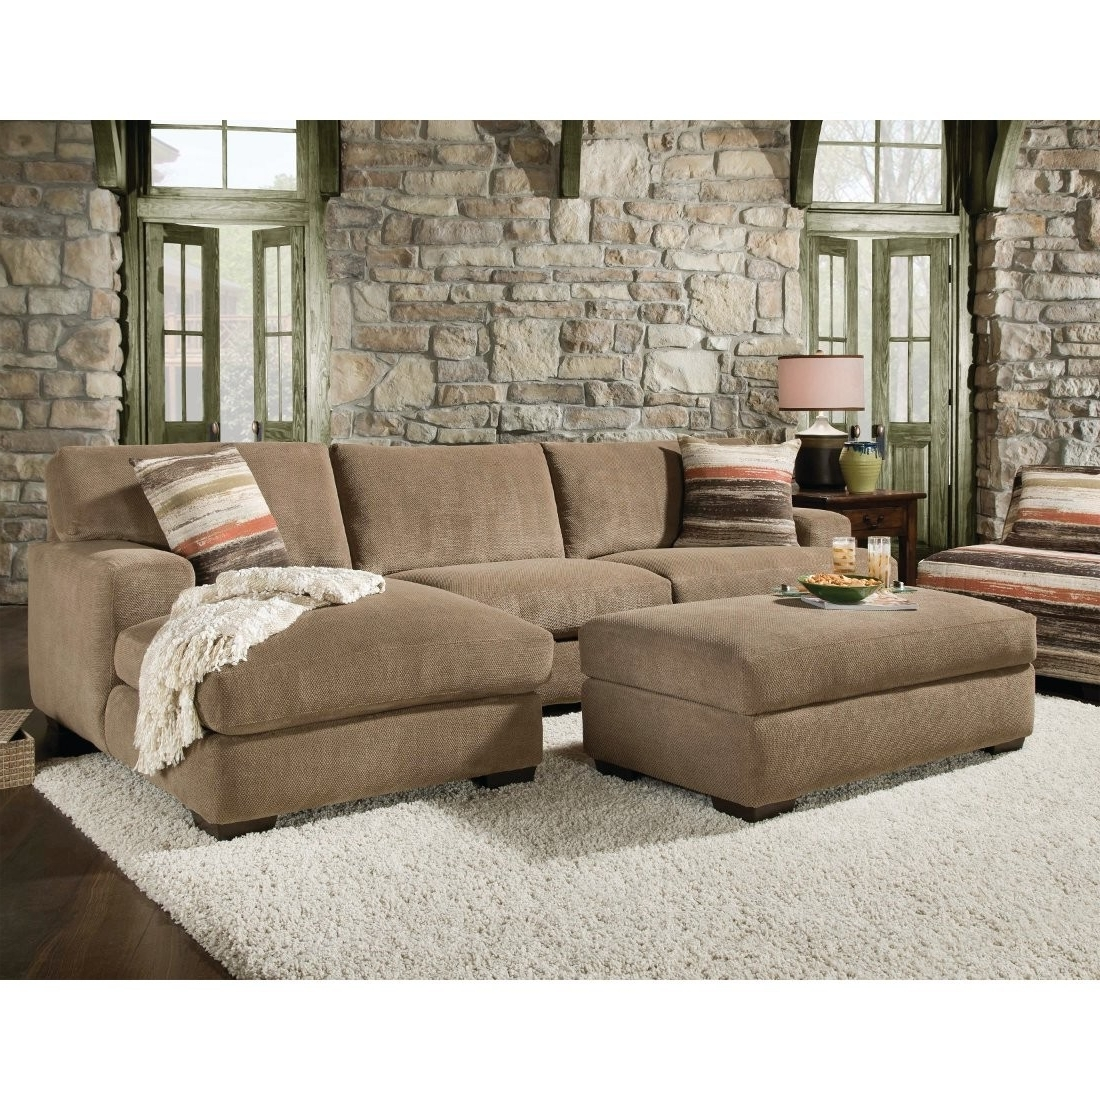 Recent Sectionals With Chaise And Ottoman Within Beautiful Sectional Sofa With Chaise And Ottoman Pictures (View 3 of 20)